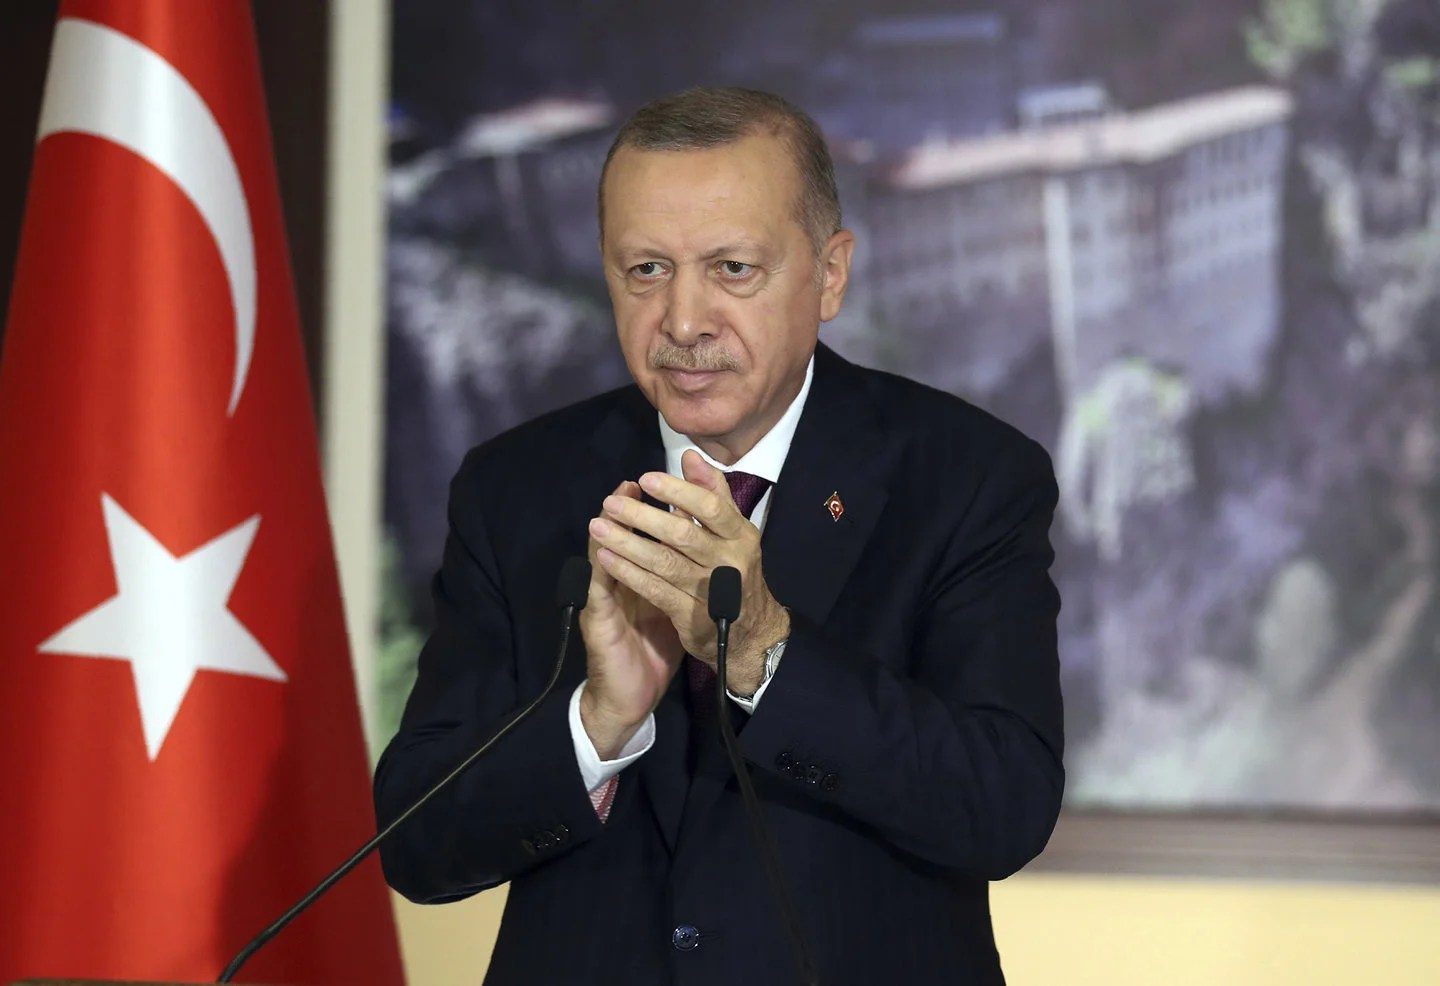 Turkey's President Recep Tayyip Erdogan applauding during a conference in Istanbul, Tuesday, July 28, 2020.